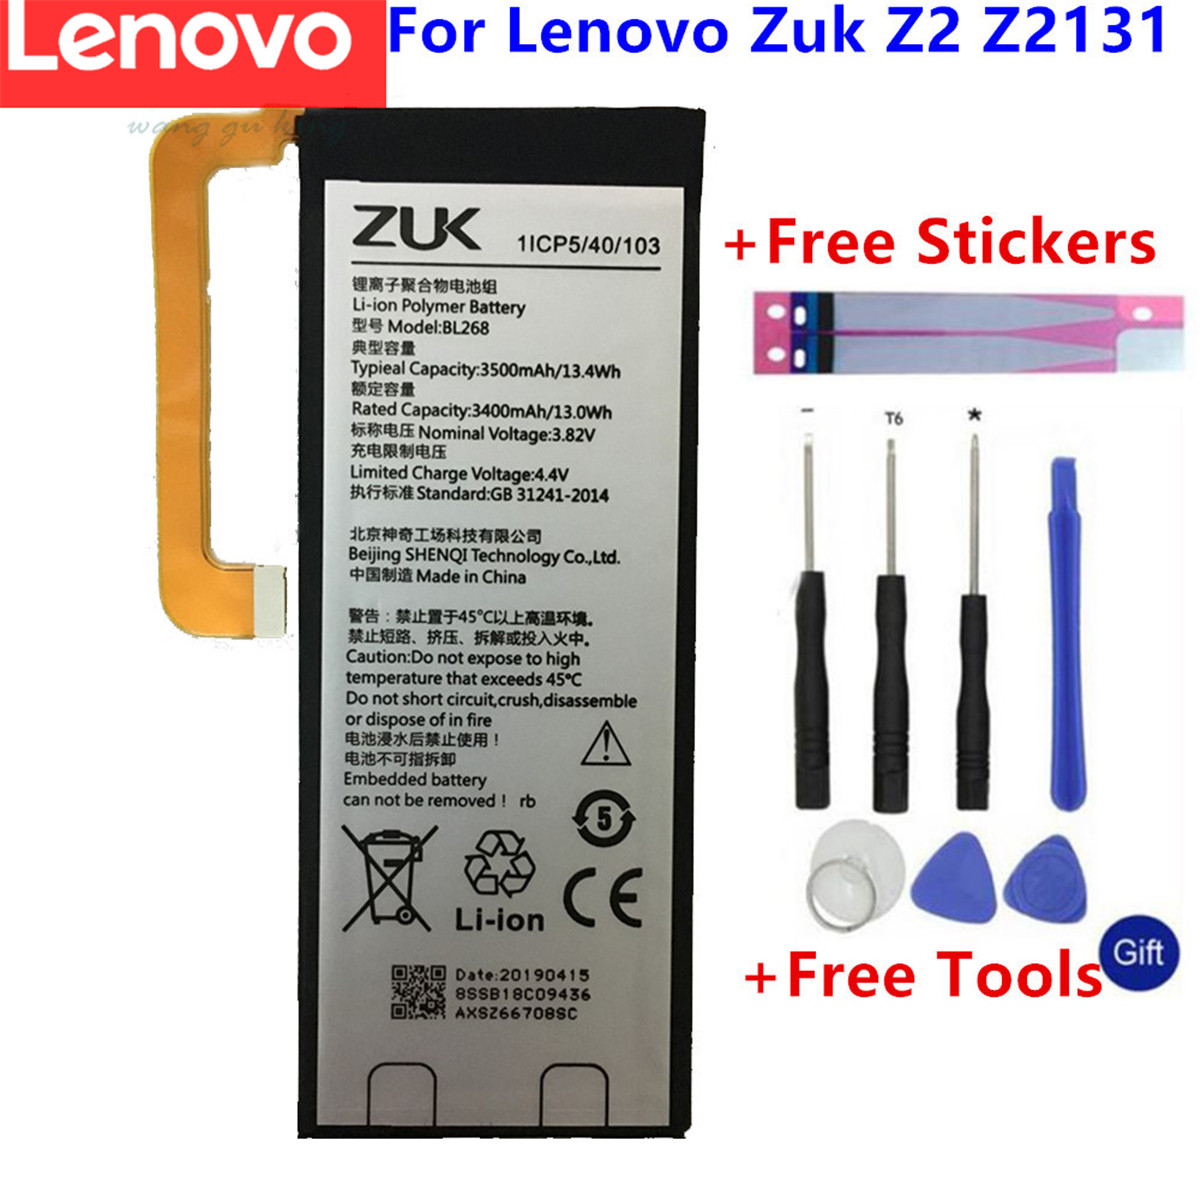 Original battery 3.82V 3500mAh BL268 For Lenovo ZUK Z2 Z2131 Battery +Gift Tools +Stickers image